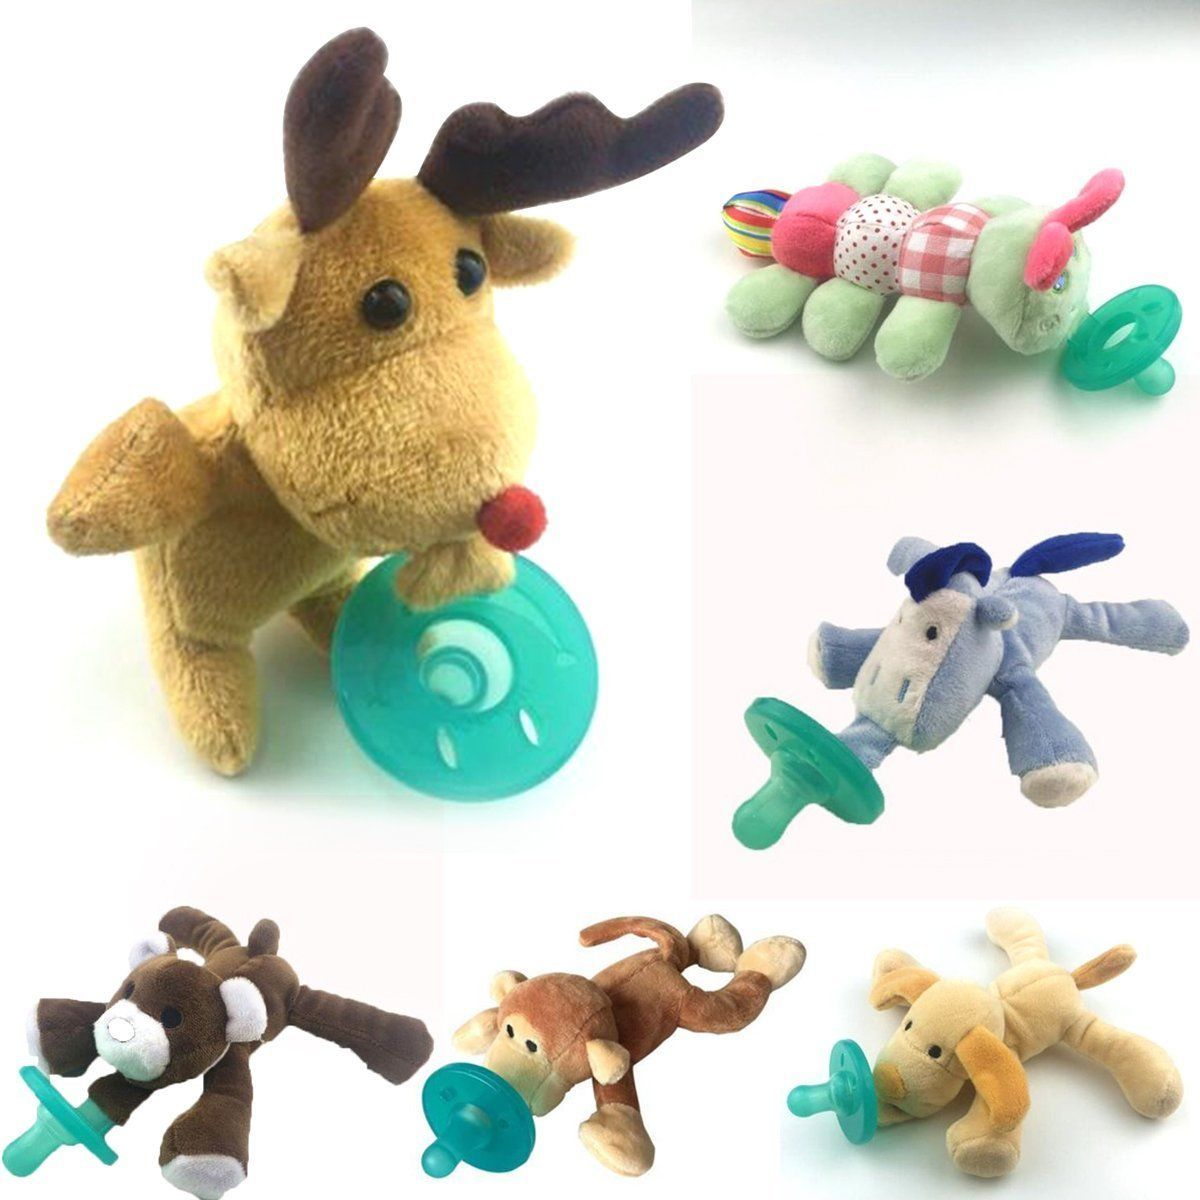 Cute Animal Plush Toy Infant Baby Soothie Pacifier 0-6 Months 2017